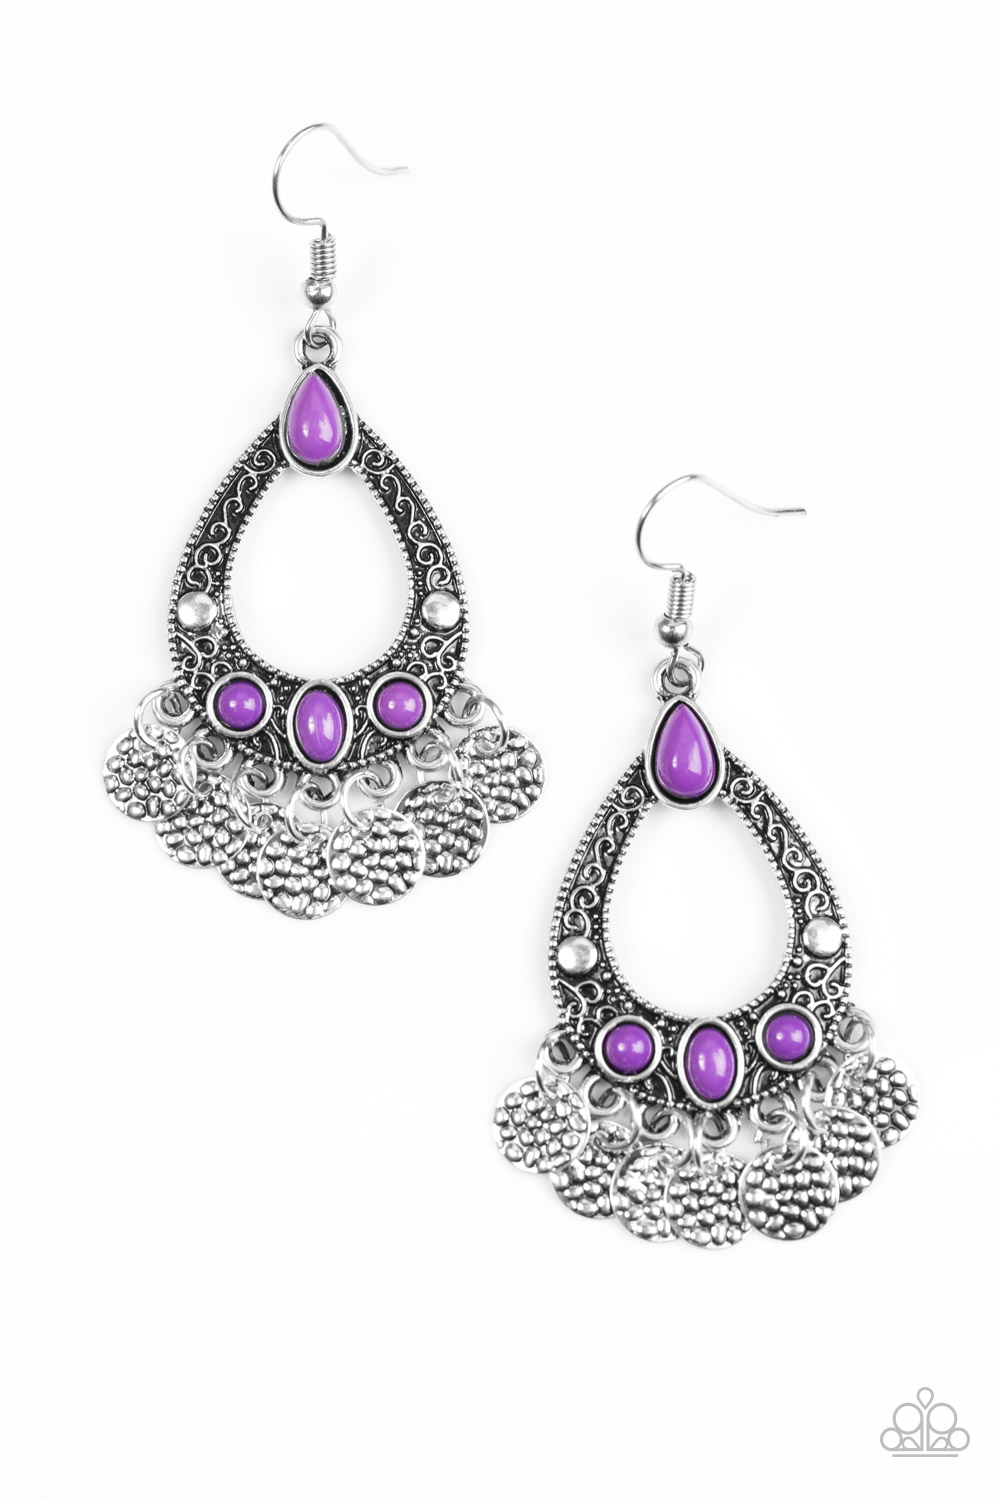 Island Escapade - Purple Earrings $5 my-bling.com Purple and silver chandelier earrings